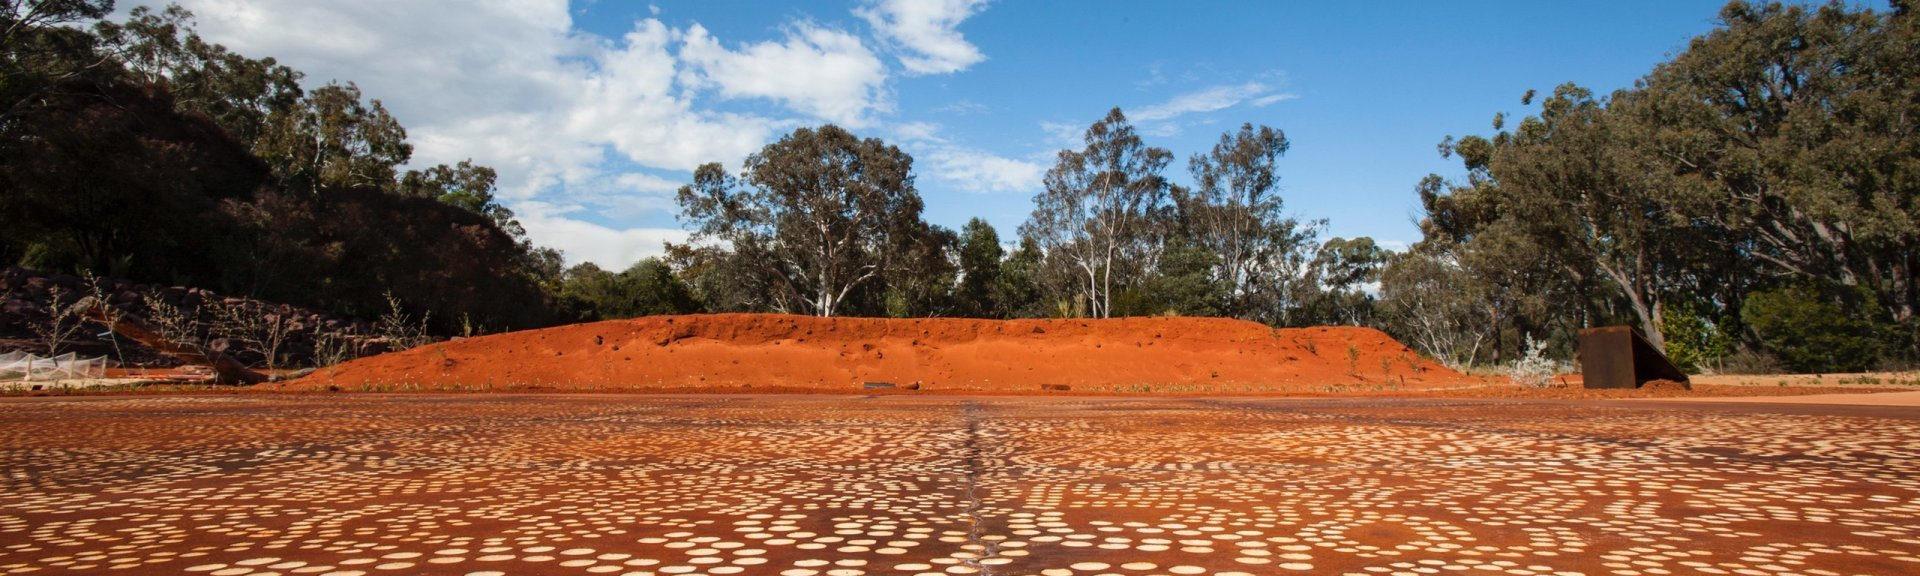 The Red Centre Garden